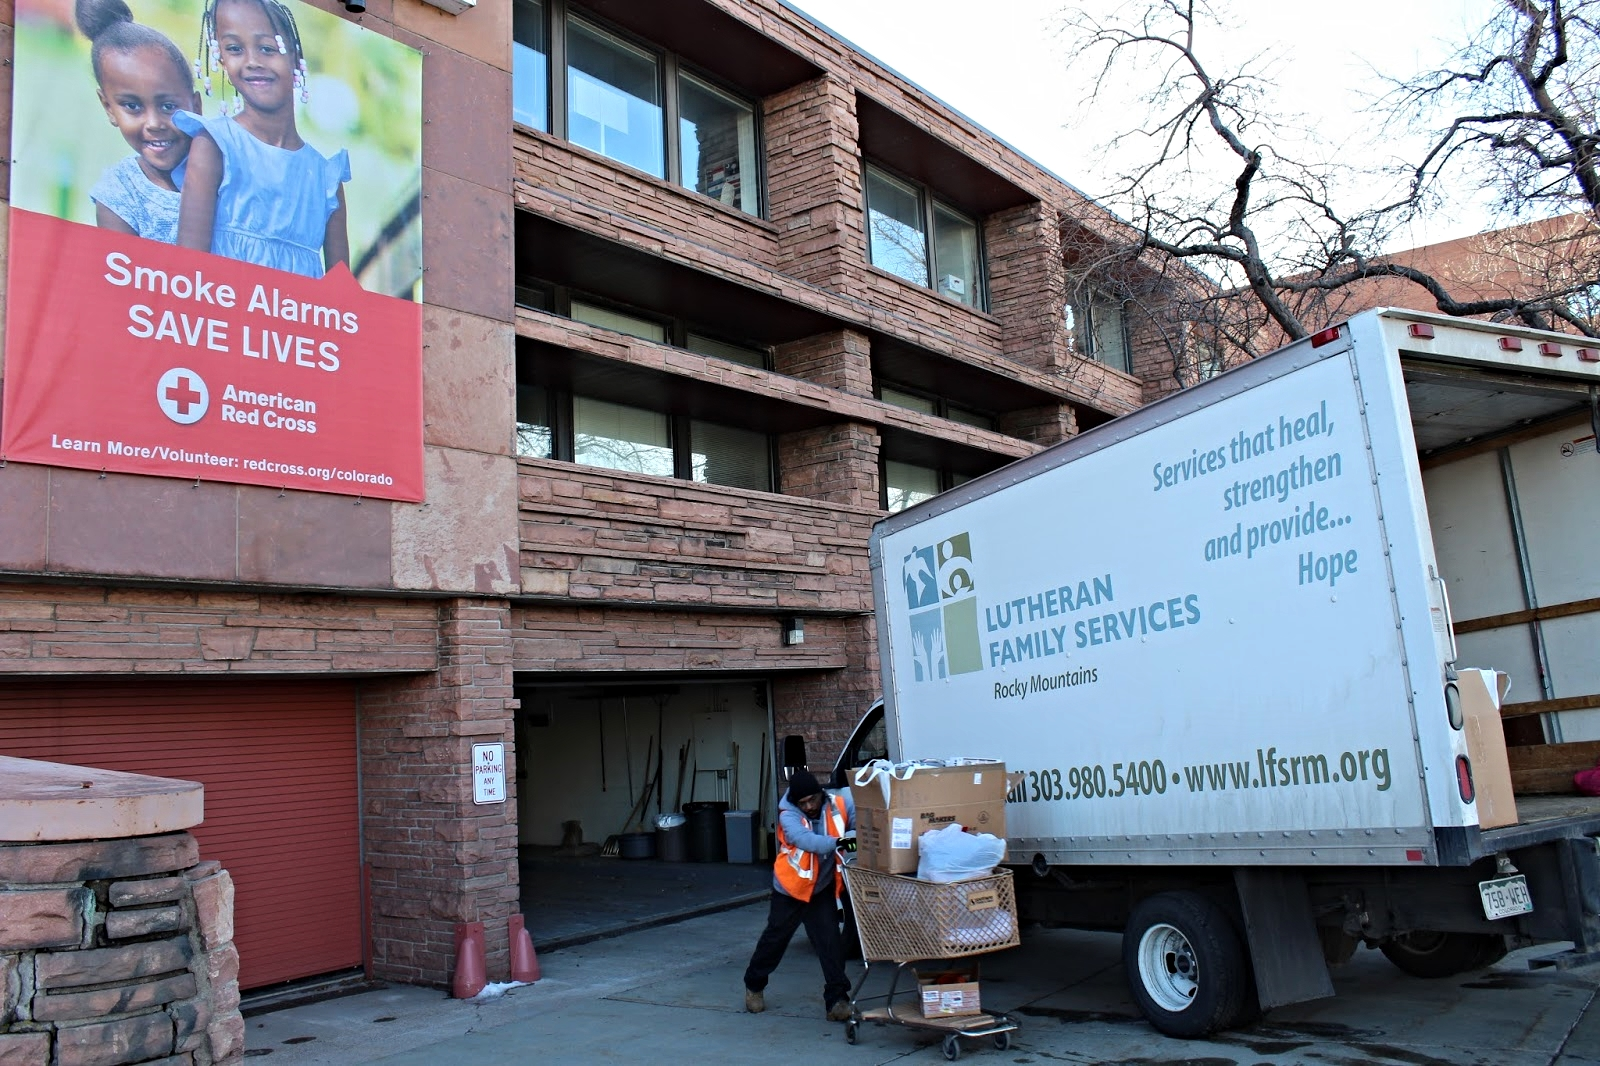 A Lutheran Family Services worker loads supplies for refugee welcome kits from the Red Cross.